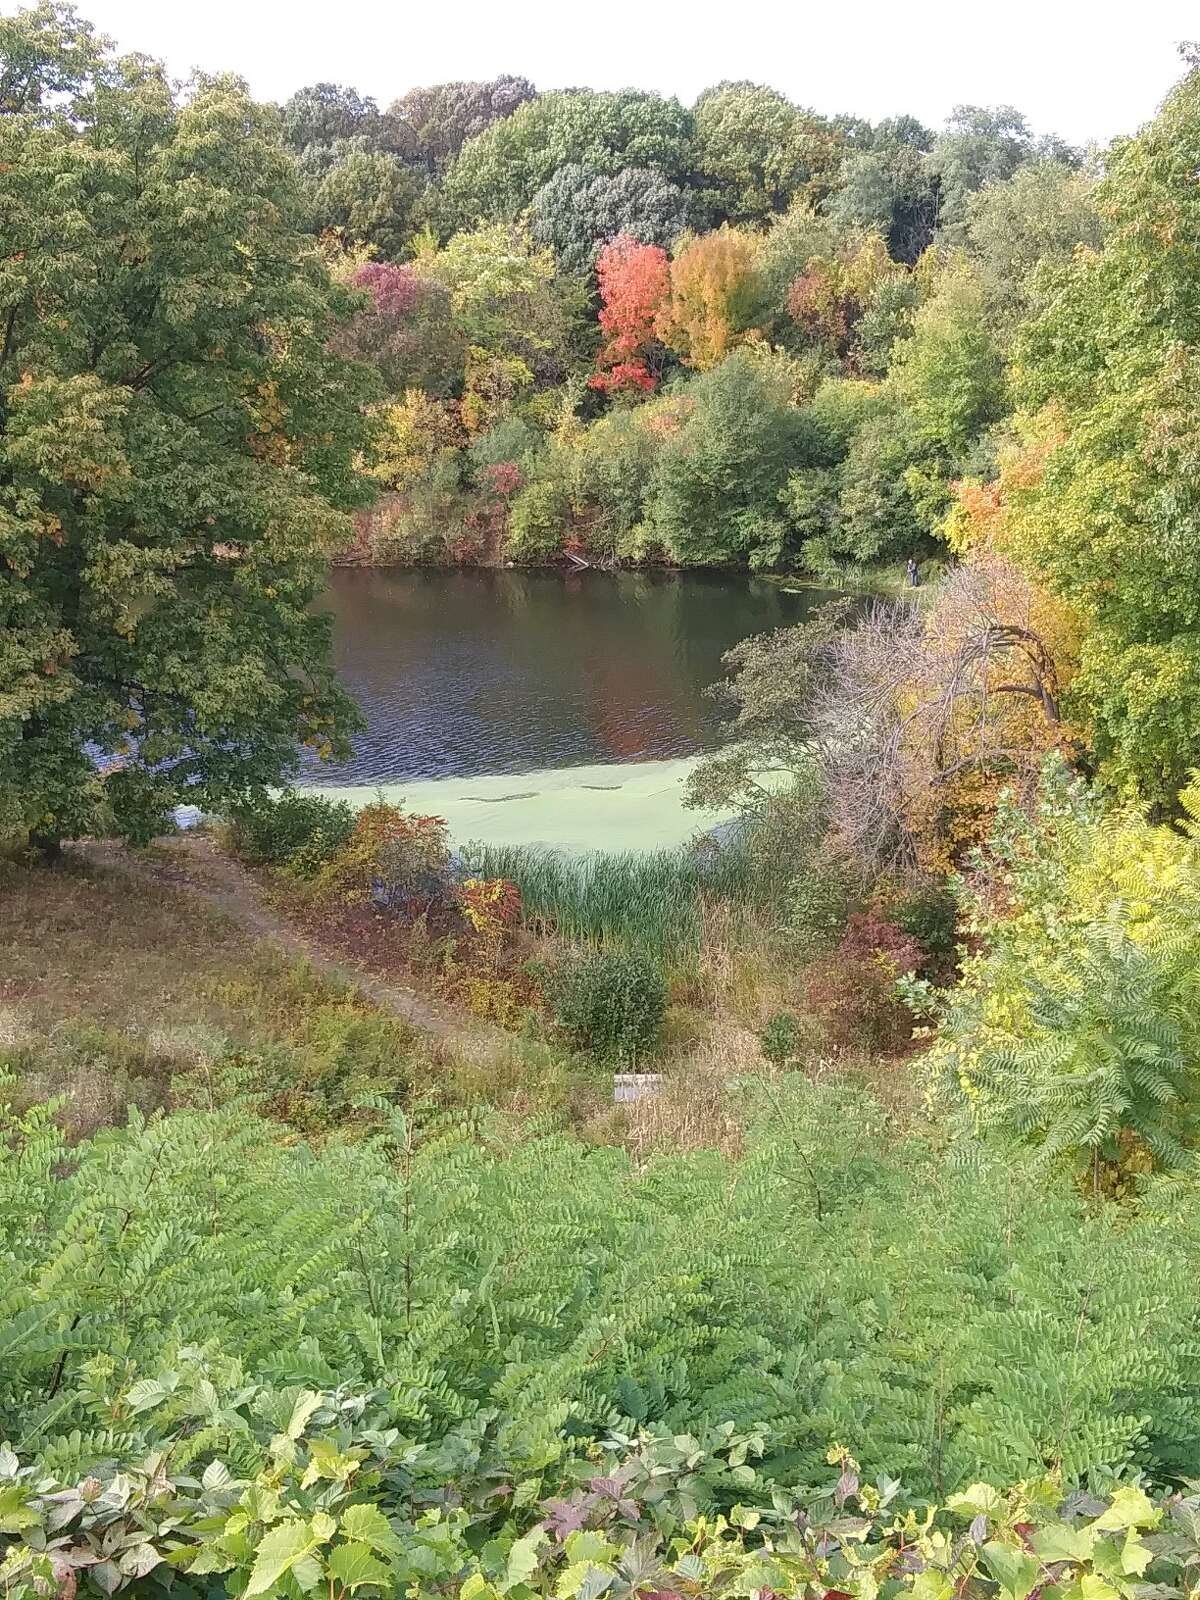 Pond in frear park troy ny. Taken 10/12 by michael galeo while biking